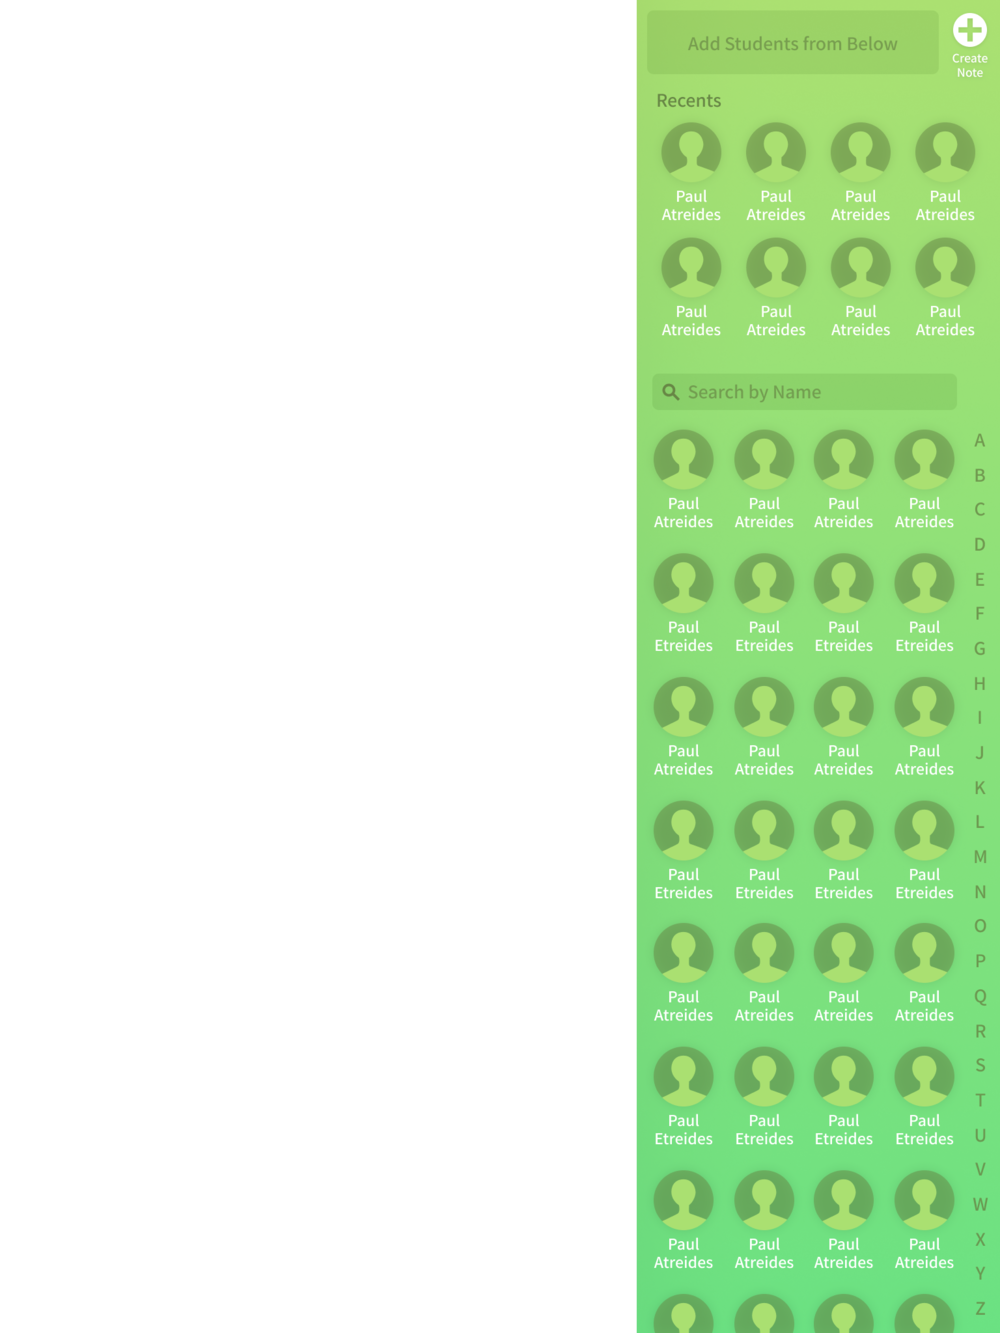 student selector popover.png